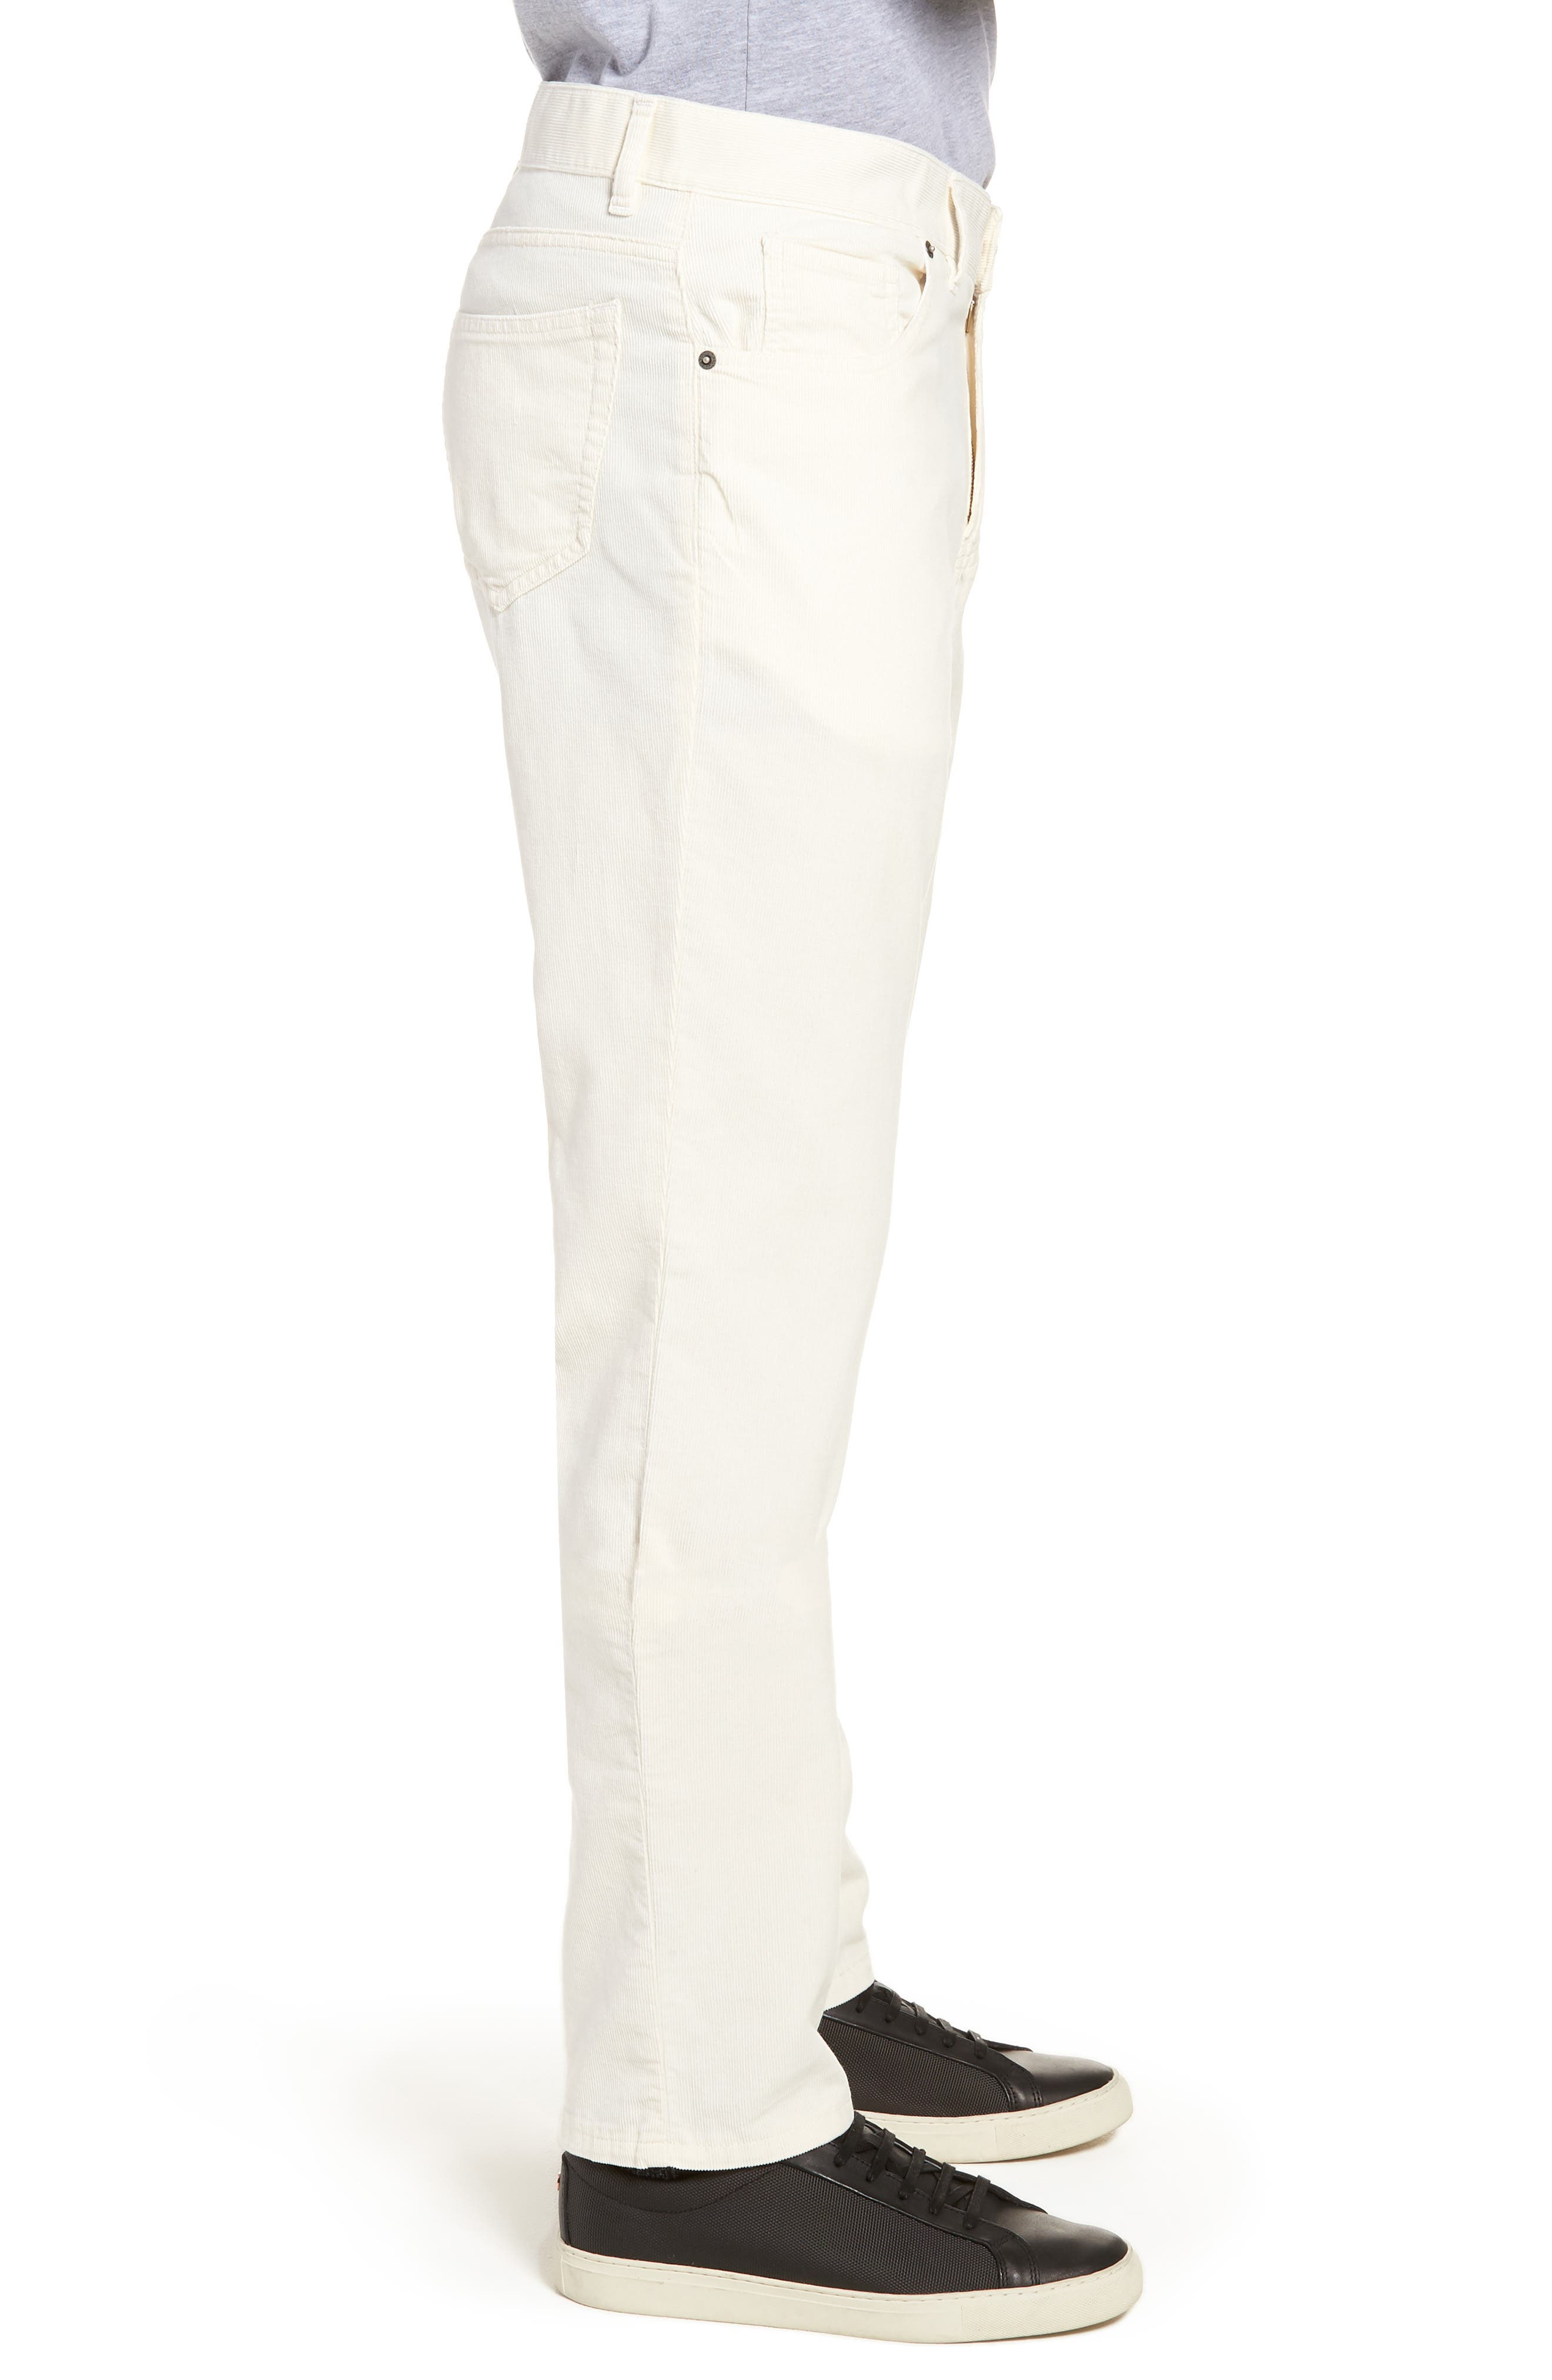 Q Cord Trousers,                             Alternate thumbnail 3, color,                             Natural